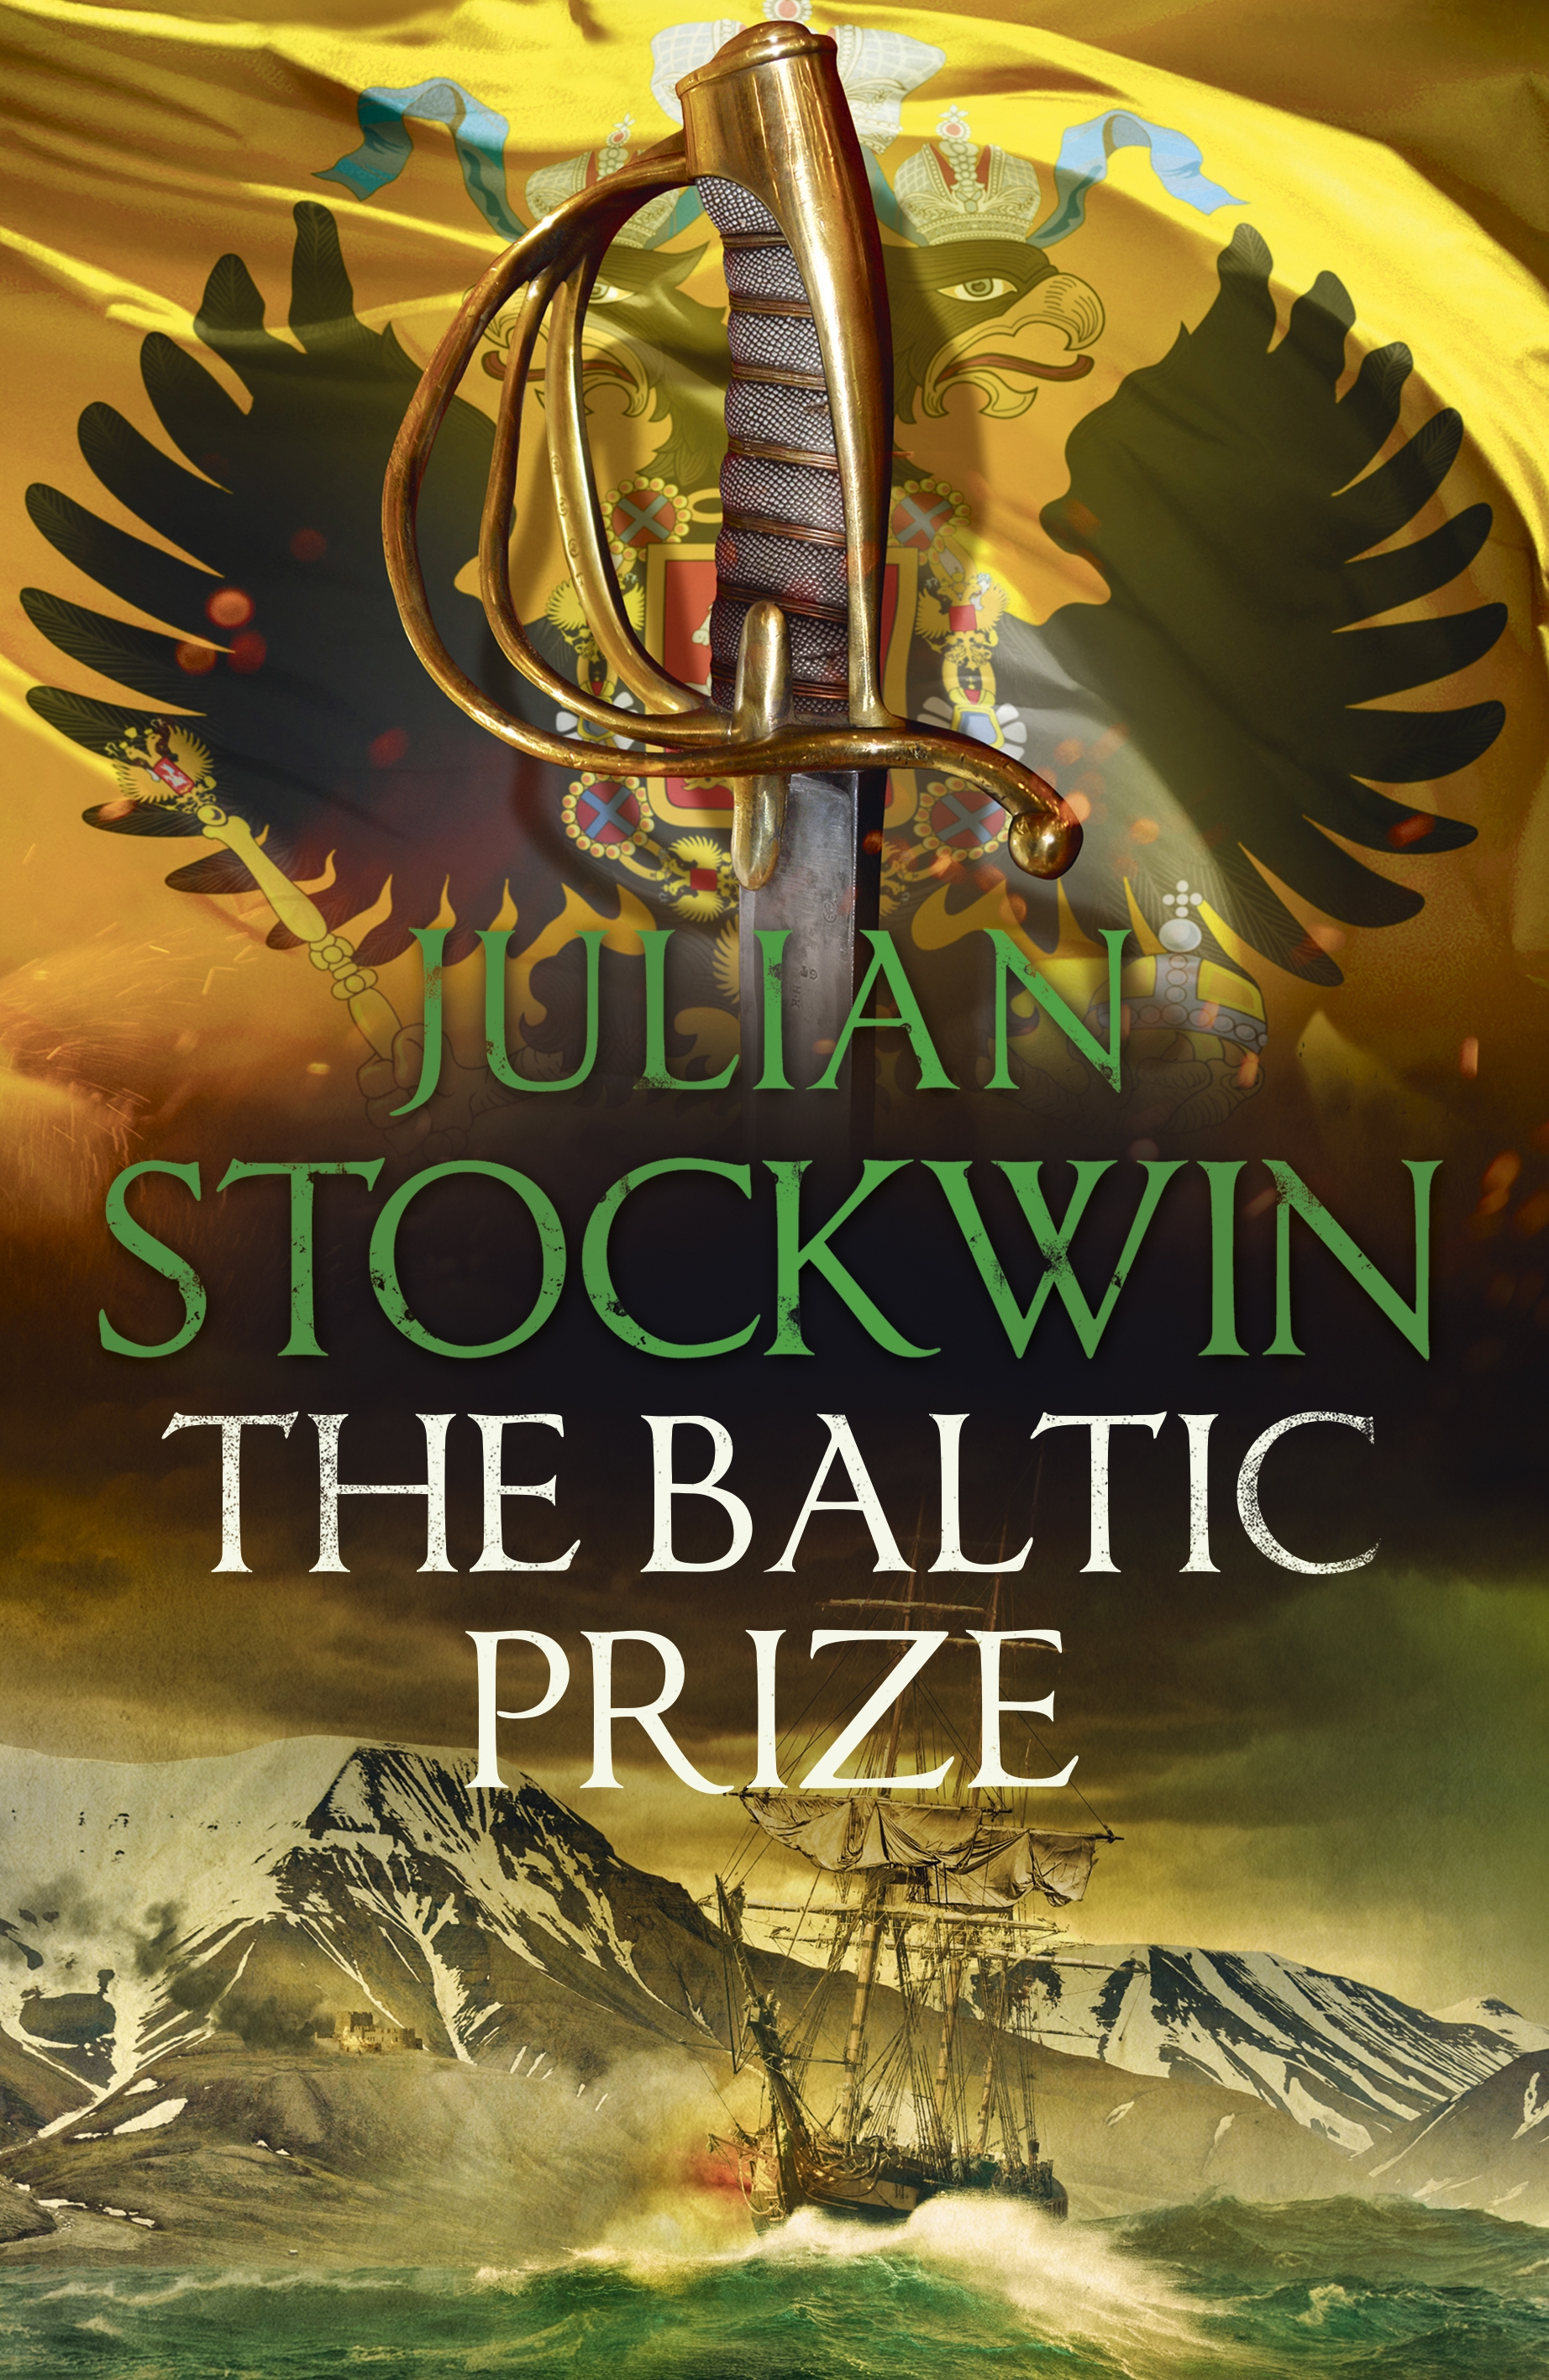 019 BALTIC PRIZE (KYDD series) - STOCKWIN Julian - UK, Hodder.jpg